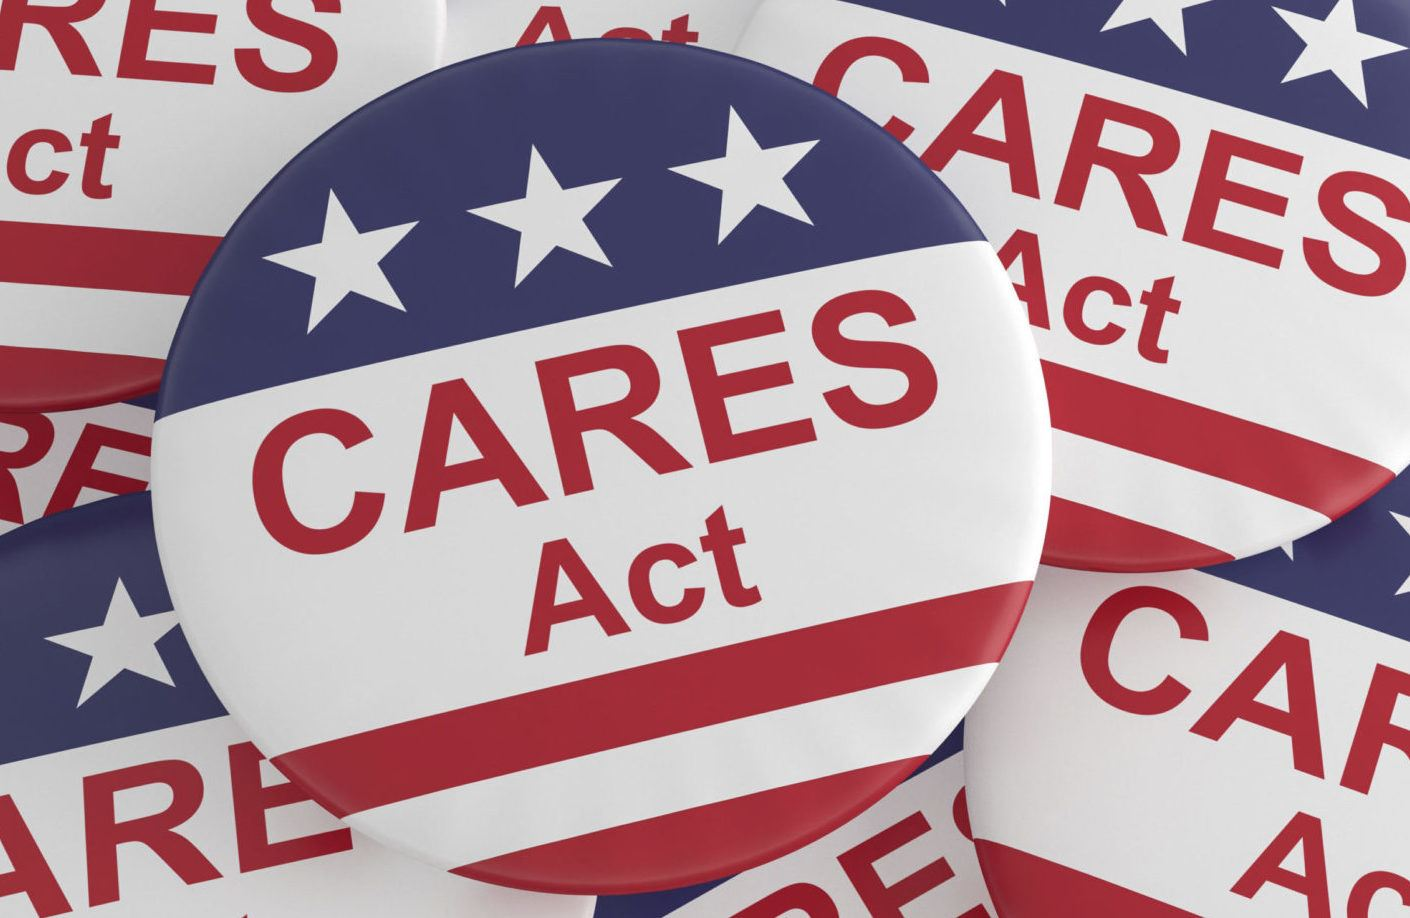 CARES ACT button